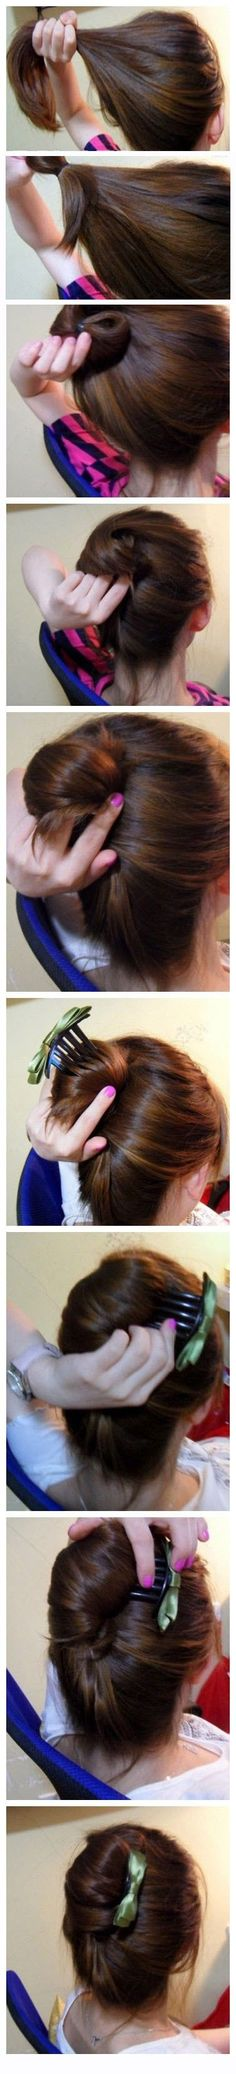 french twist with a bow hair-hair-hair-hair-hair Up Hairstyles, Pretty Hairstyles, Banana Clip Hairstyles, Style Hairstyle, Everyday Hairstyles, Wedding Hairstyles, Corte Y Color, Tips Belleza, Great Hair